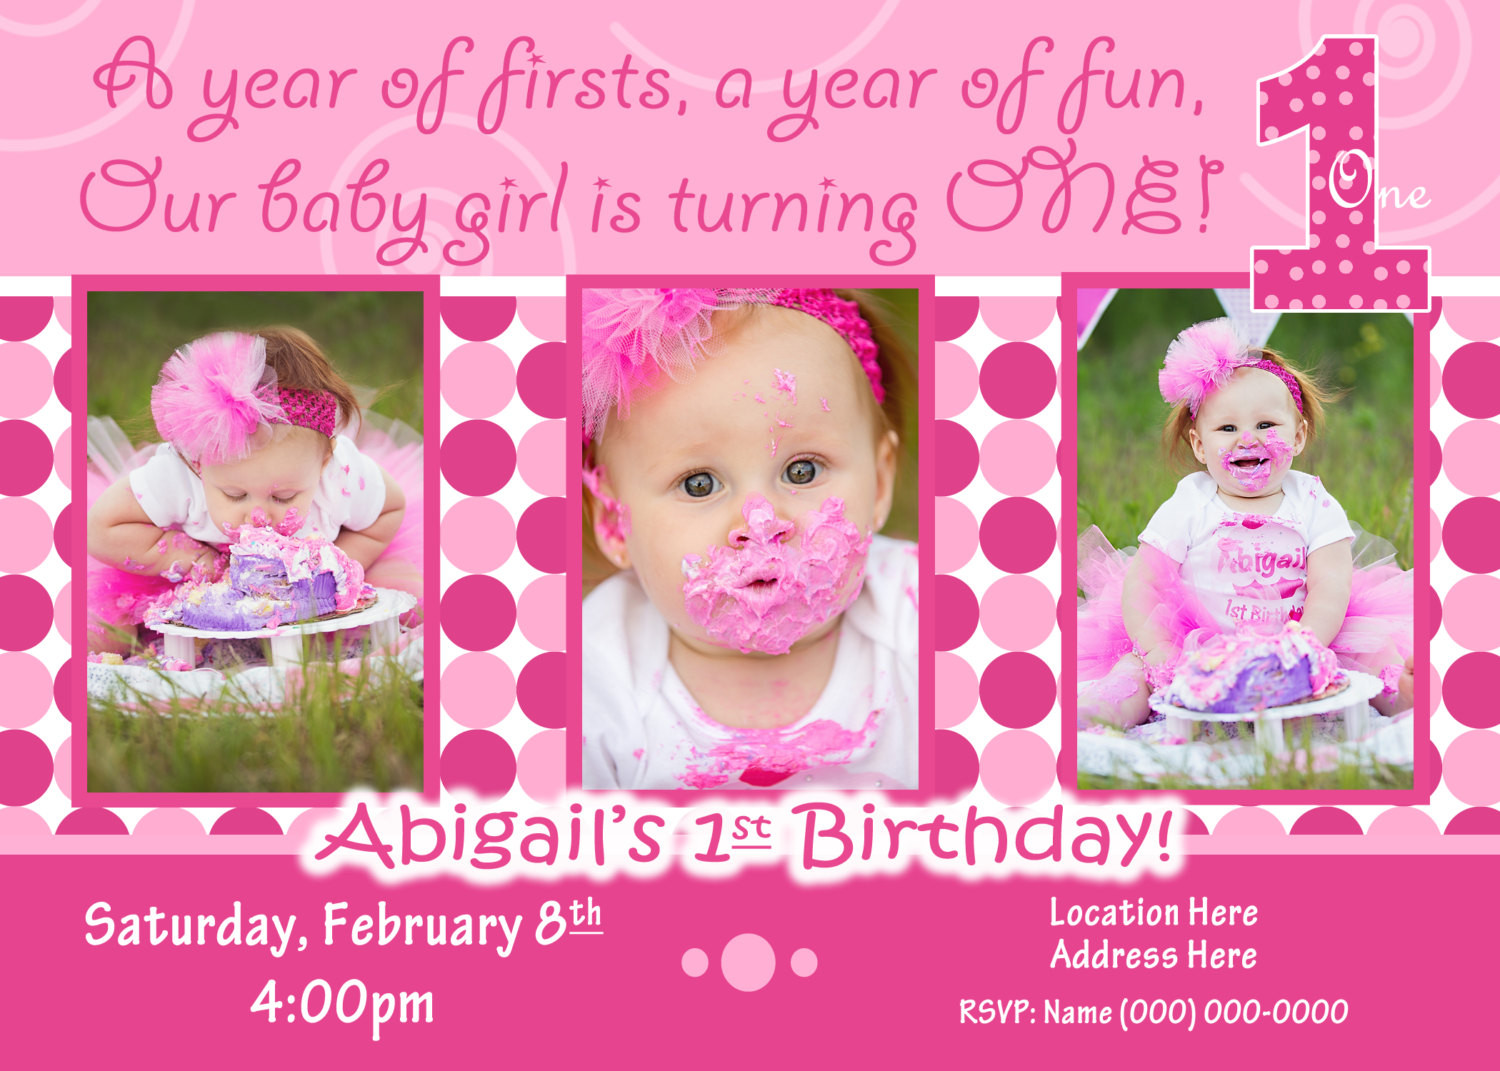 Best ideas about Girl First Birthday Invitations . Save or Pin 1st Birthday Girl invitation 1st birthday Girl invite Now.